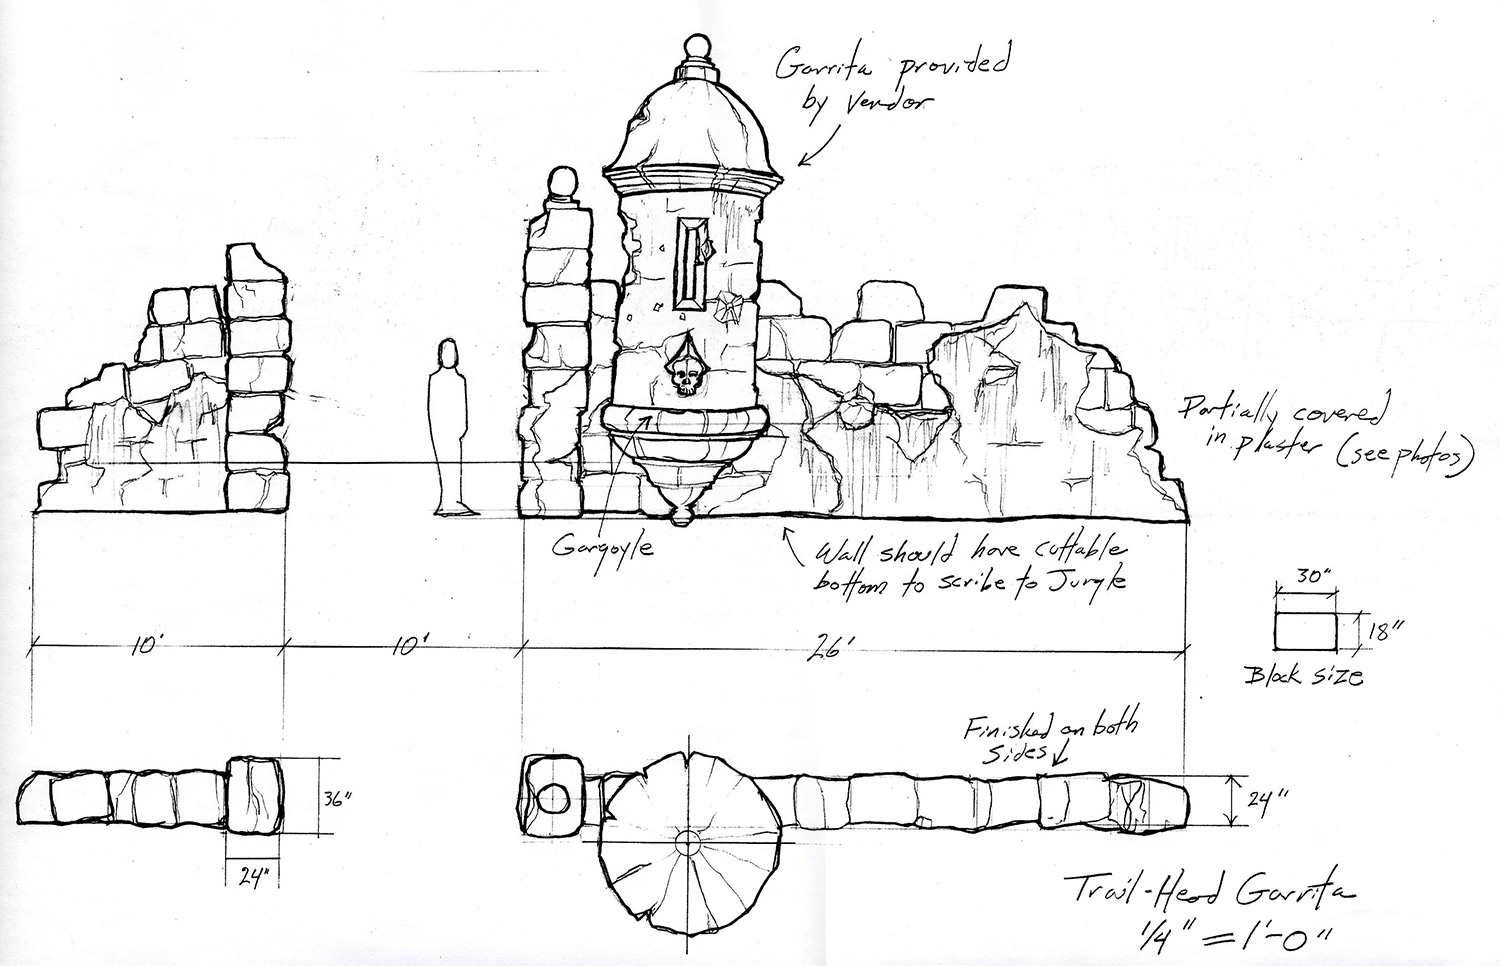 """A working drawing based on the conceptual drawing of the ruined """"Garita"""" from """"The Wizards of Waverly Place: The Movie"""" (2009)."""